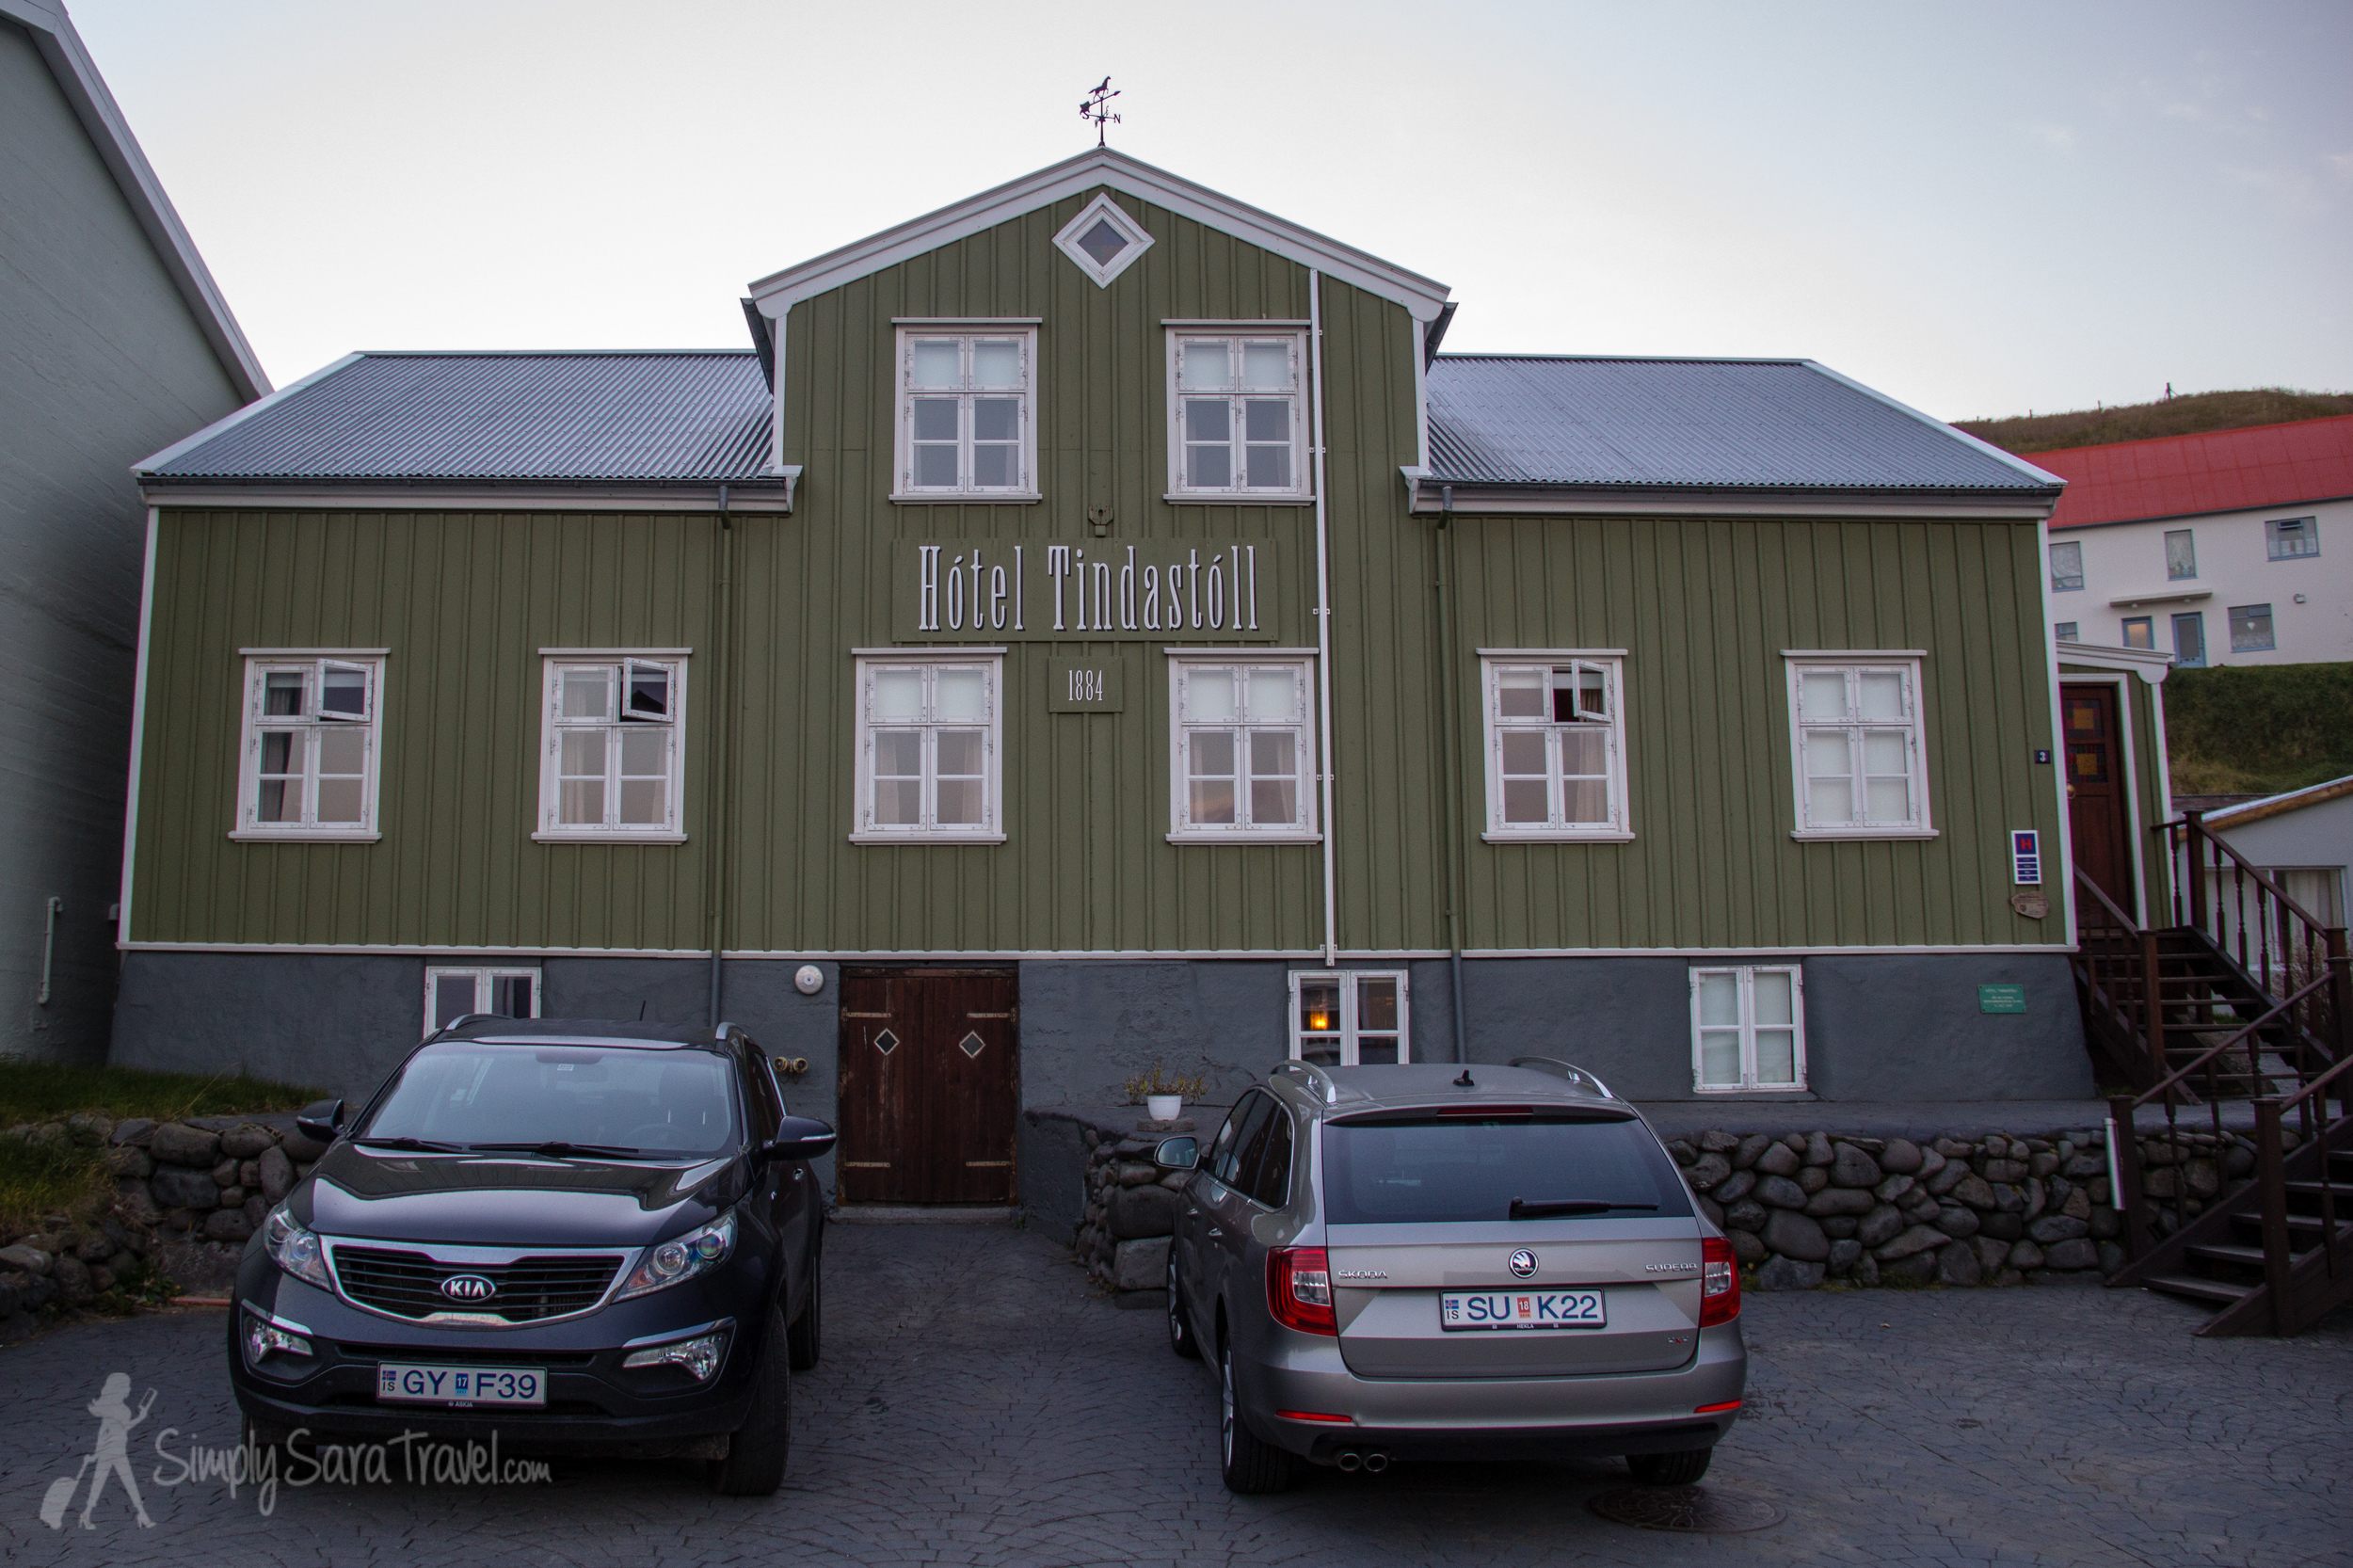 Our hotel,Hótel Tindastóll. This hotel  claims to be  the oldest in Iceland, opening its doors in 1884.